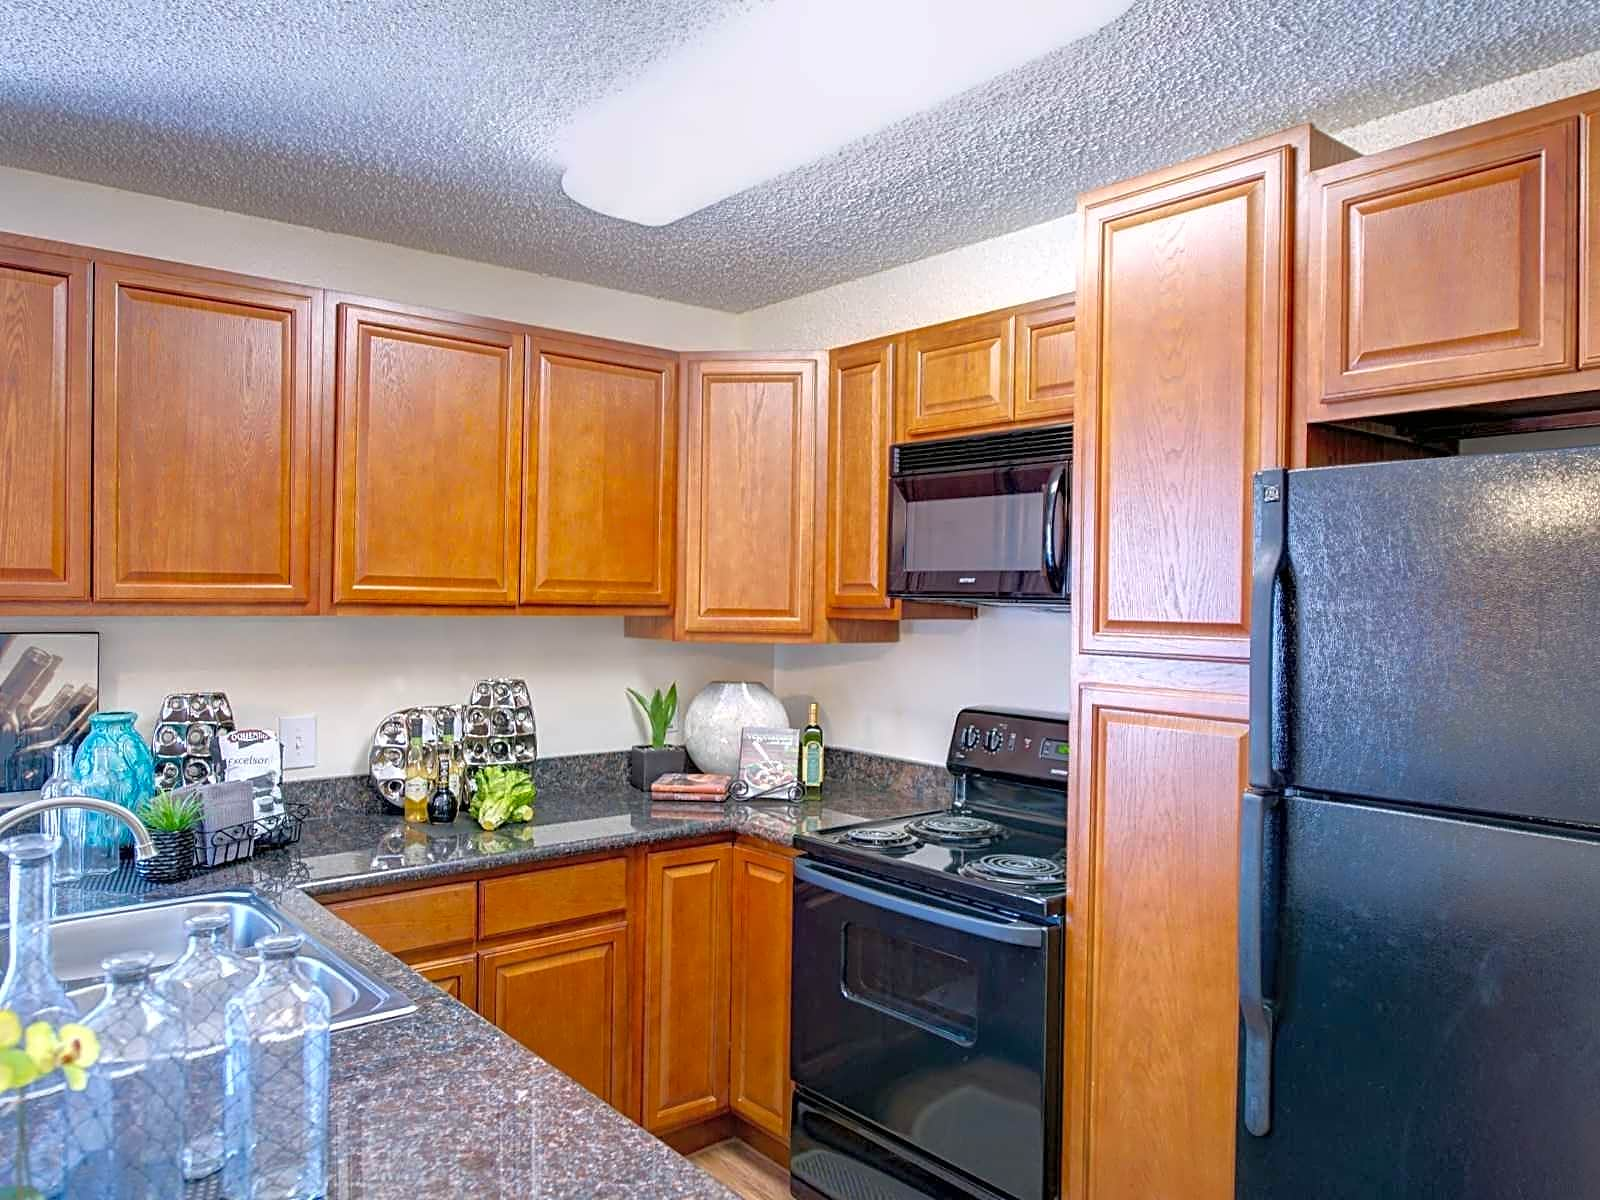 Pet Friendly Apartments In Stafford Tx Pet Friendly Houses For Rent